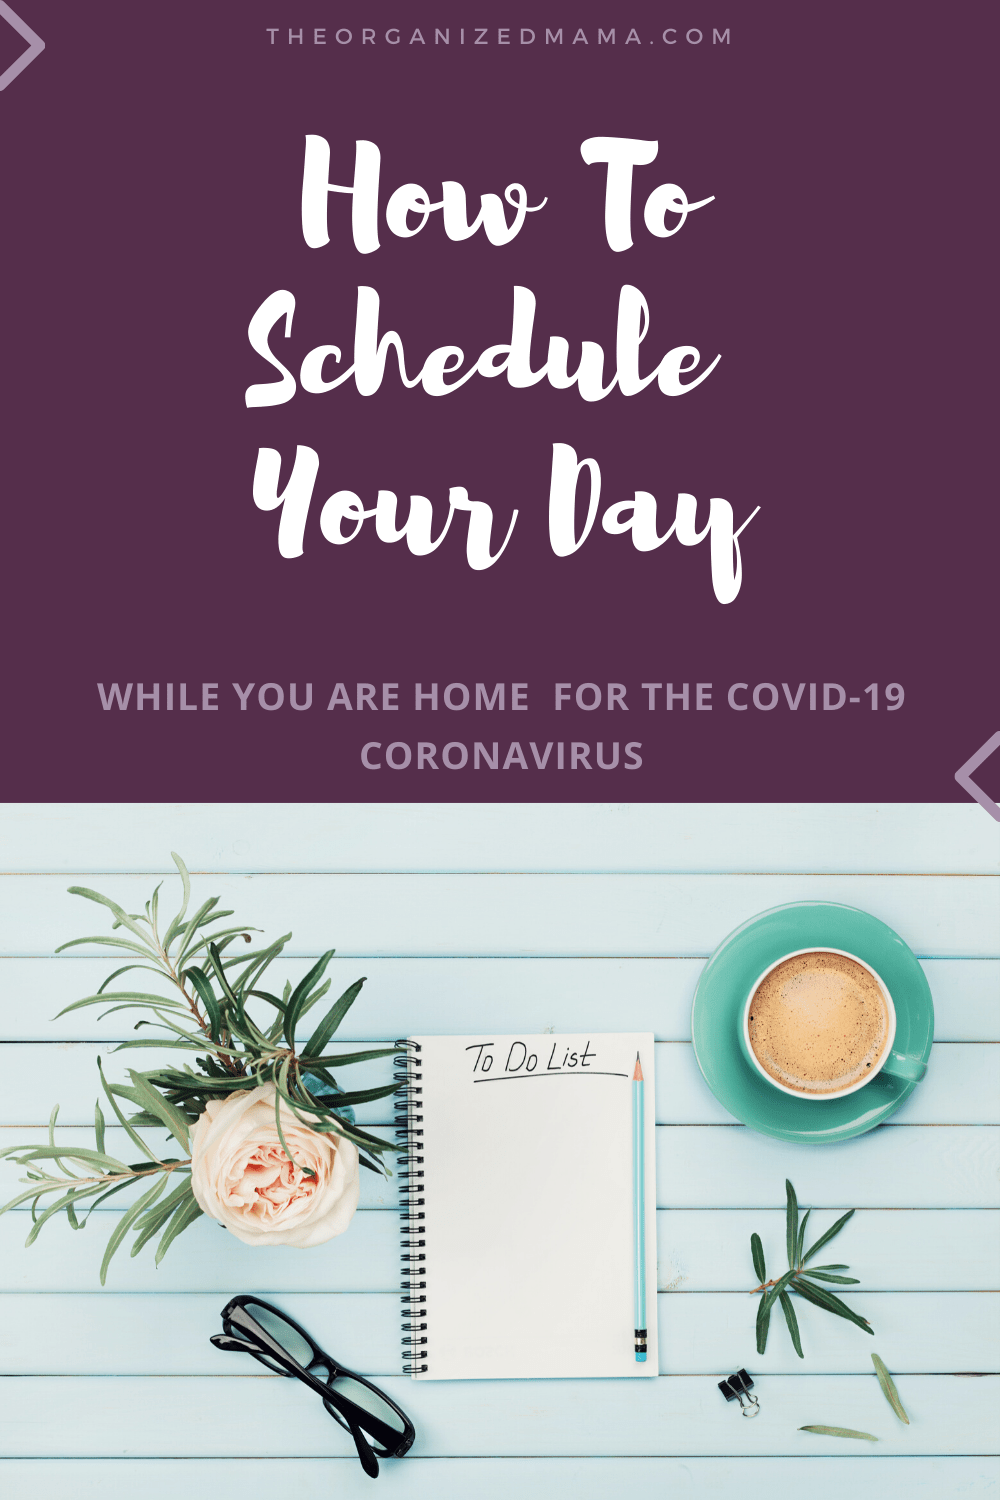 how to schedule your day for the covid-19 coronavirus while you are home #covid-19